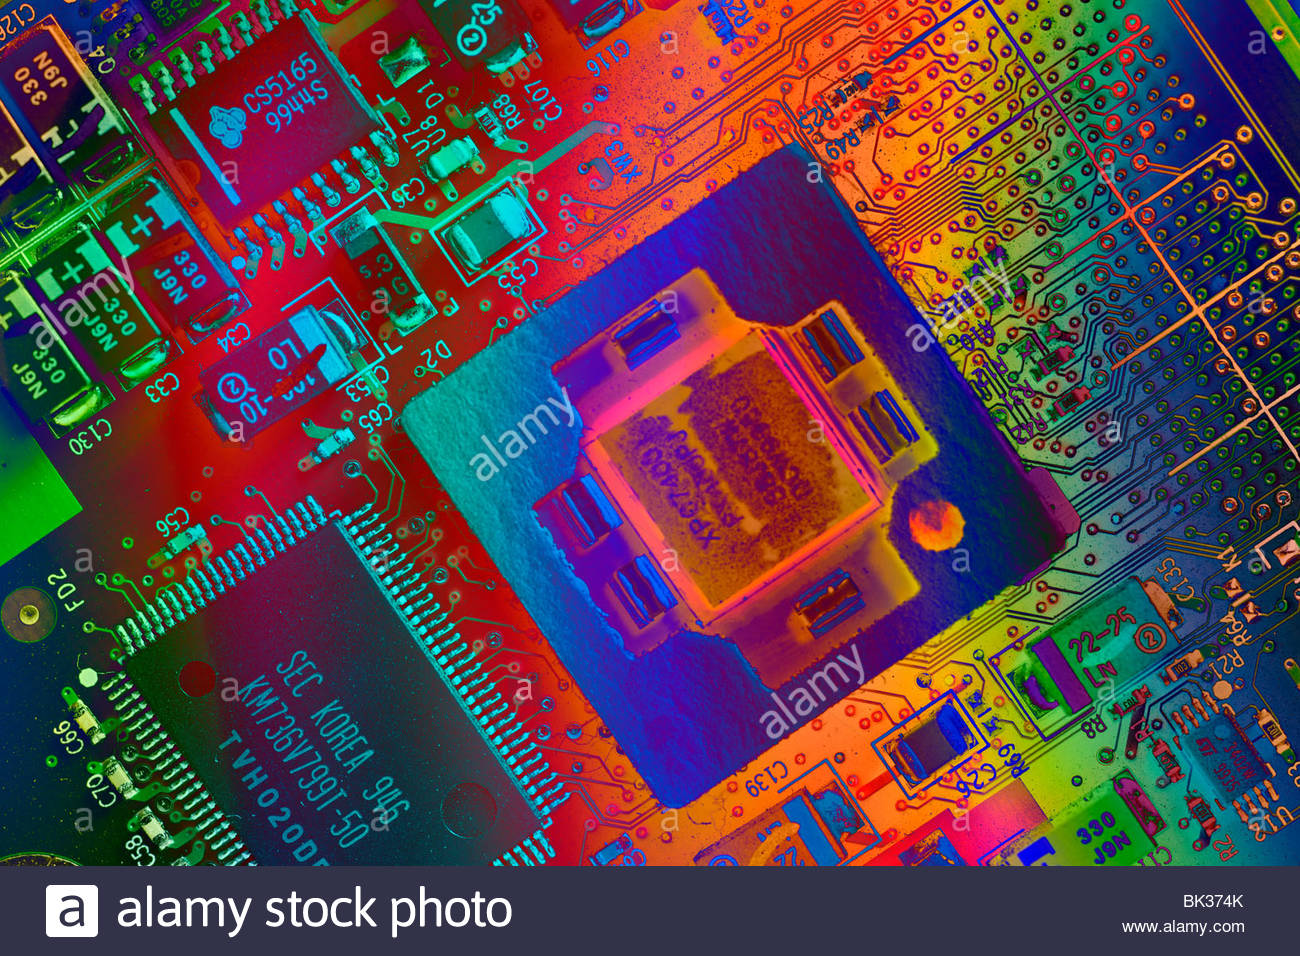 Computer Altered Stock Photos & Computer Altered Stock Images - Alamy